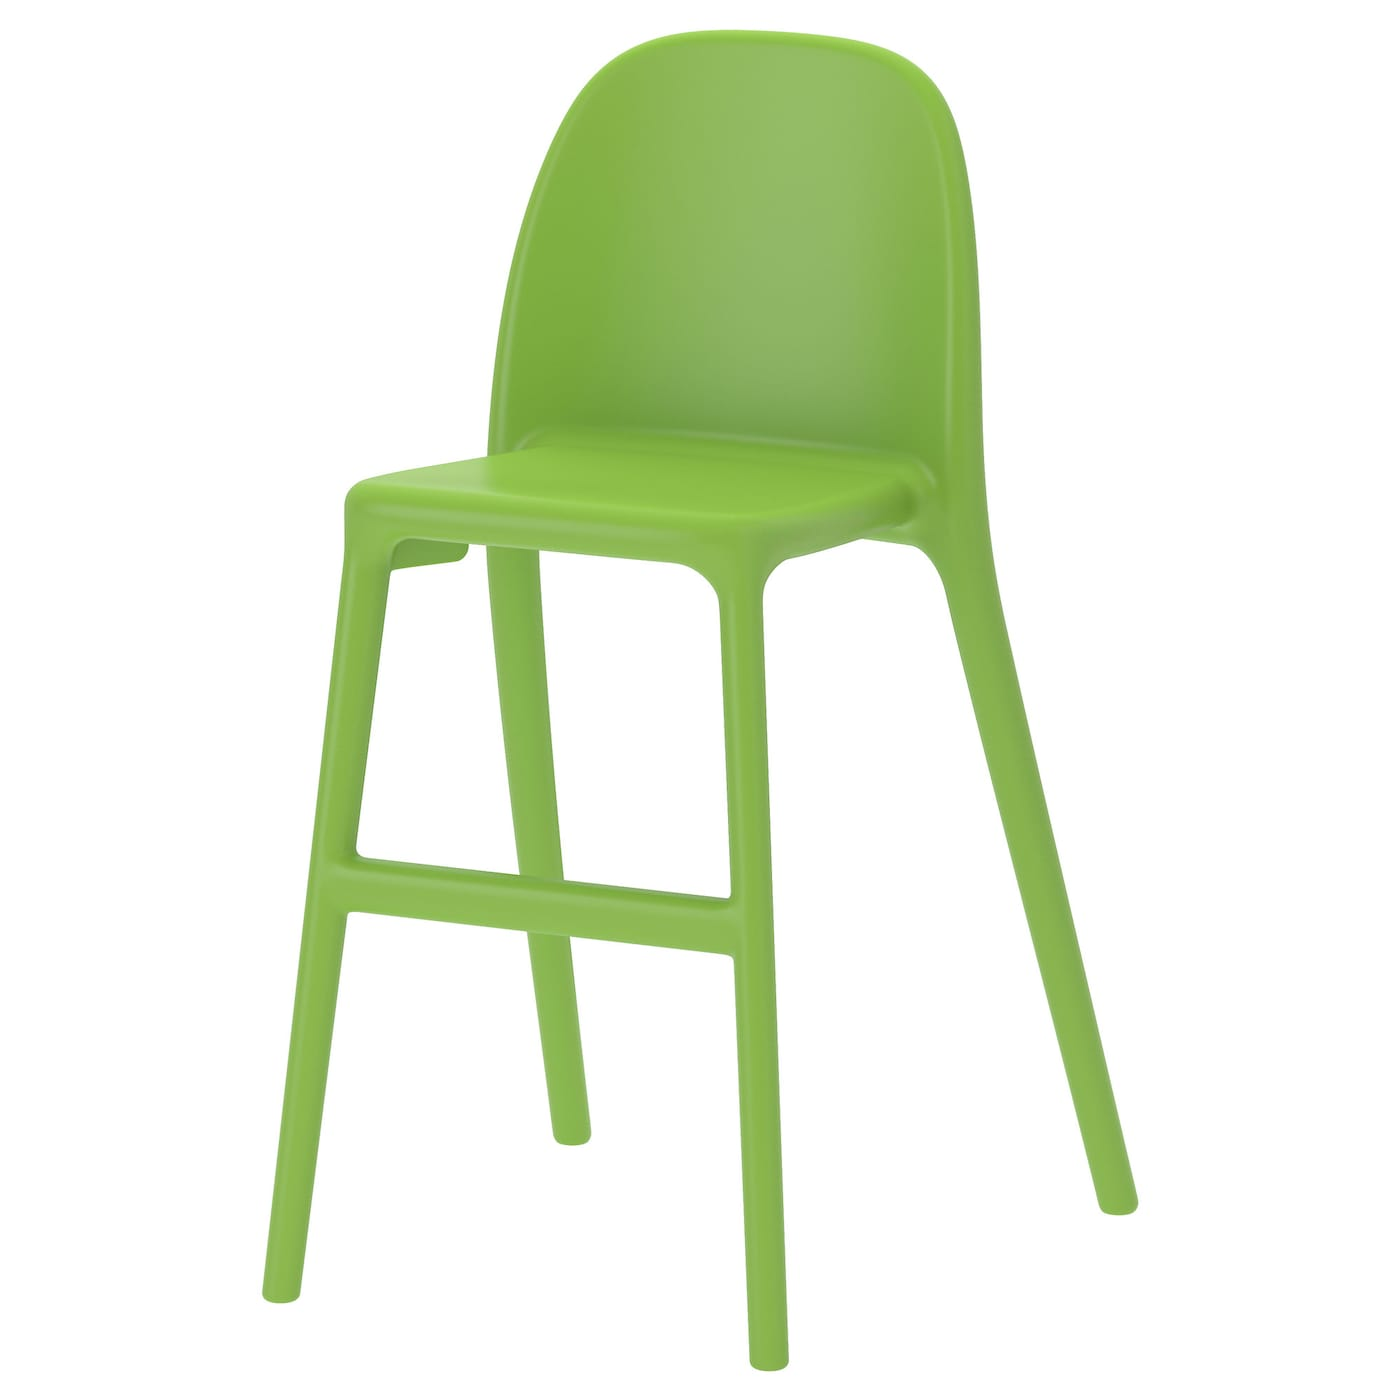 URBAN Junior chair Green IKEA